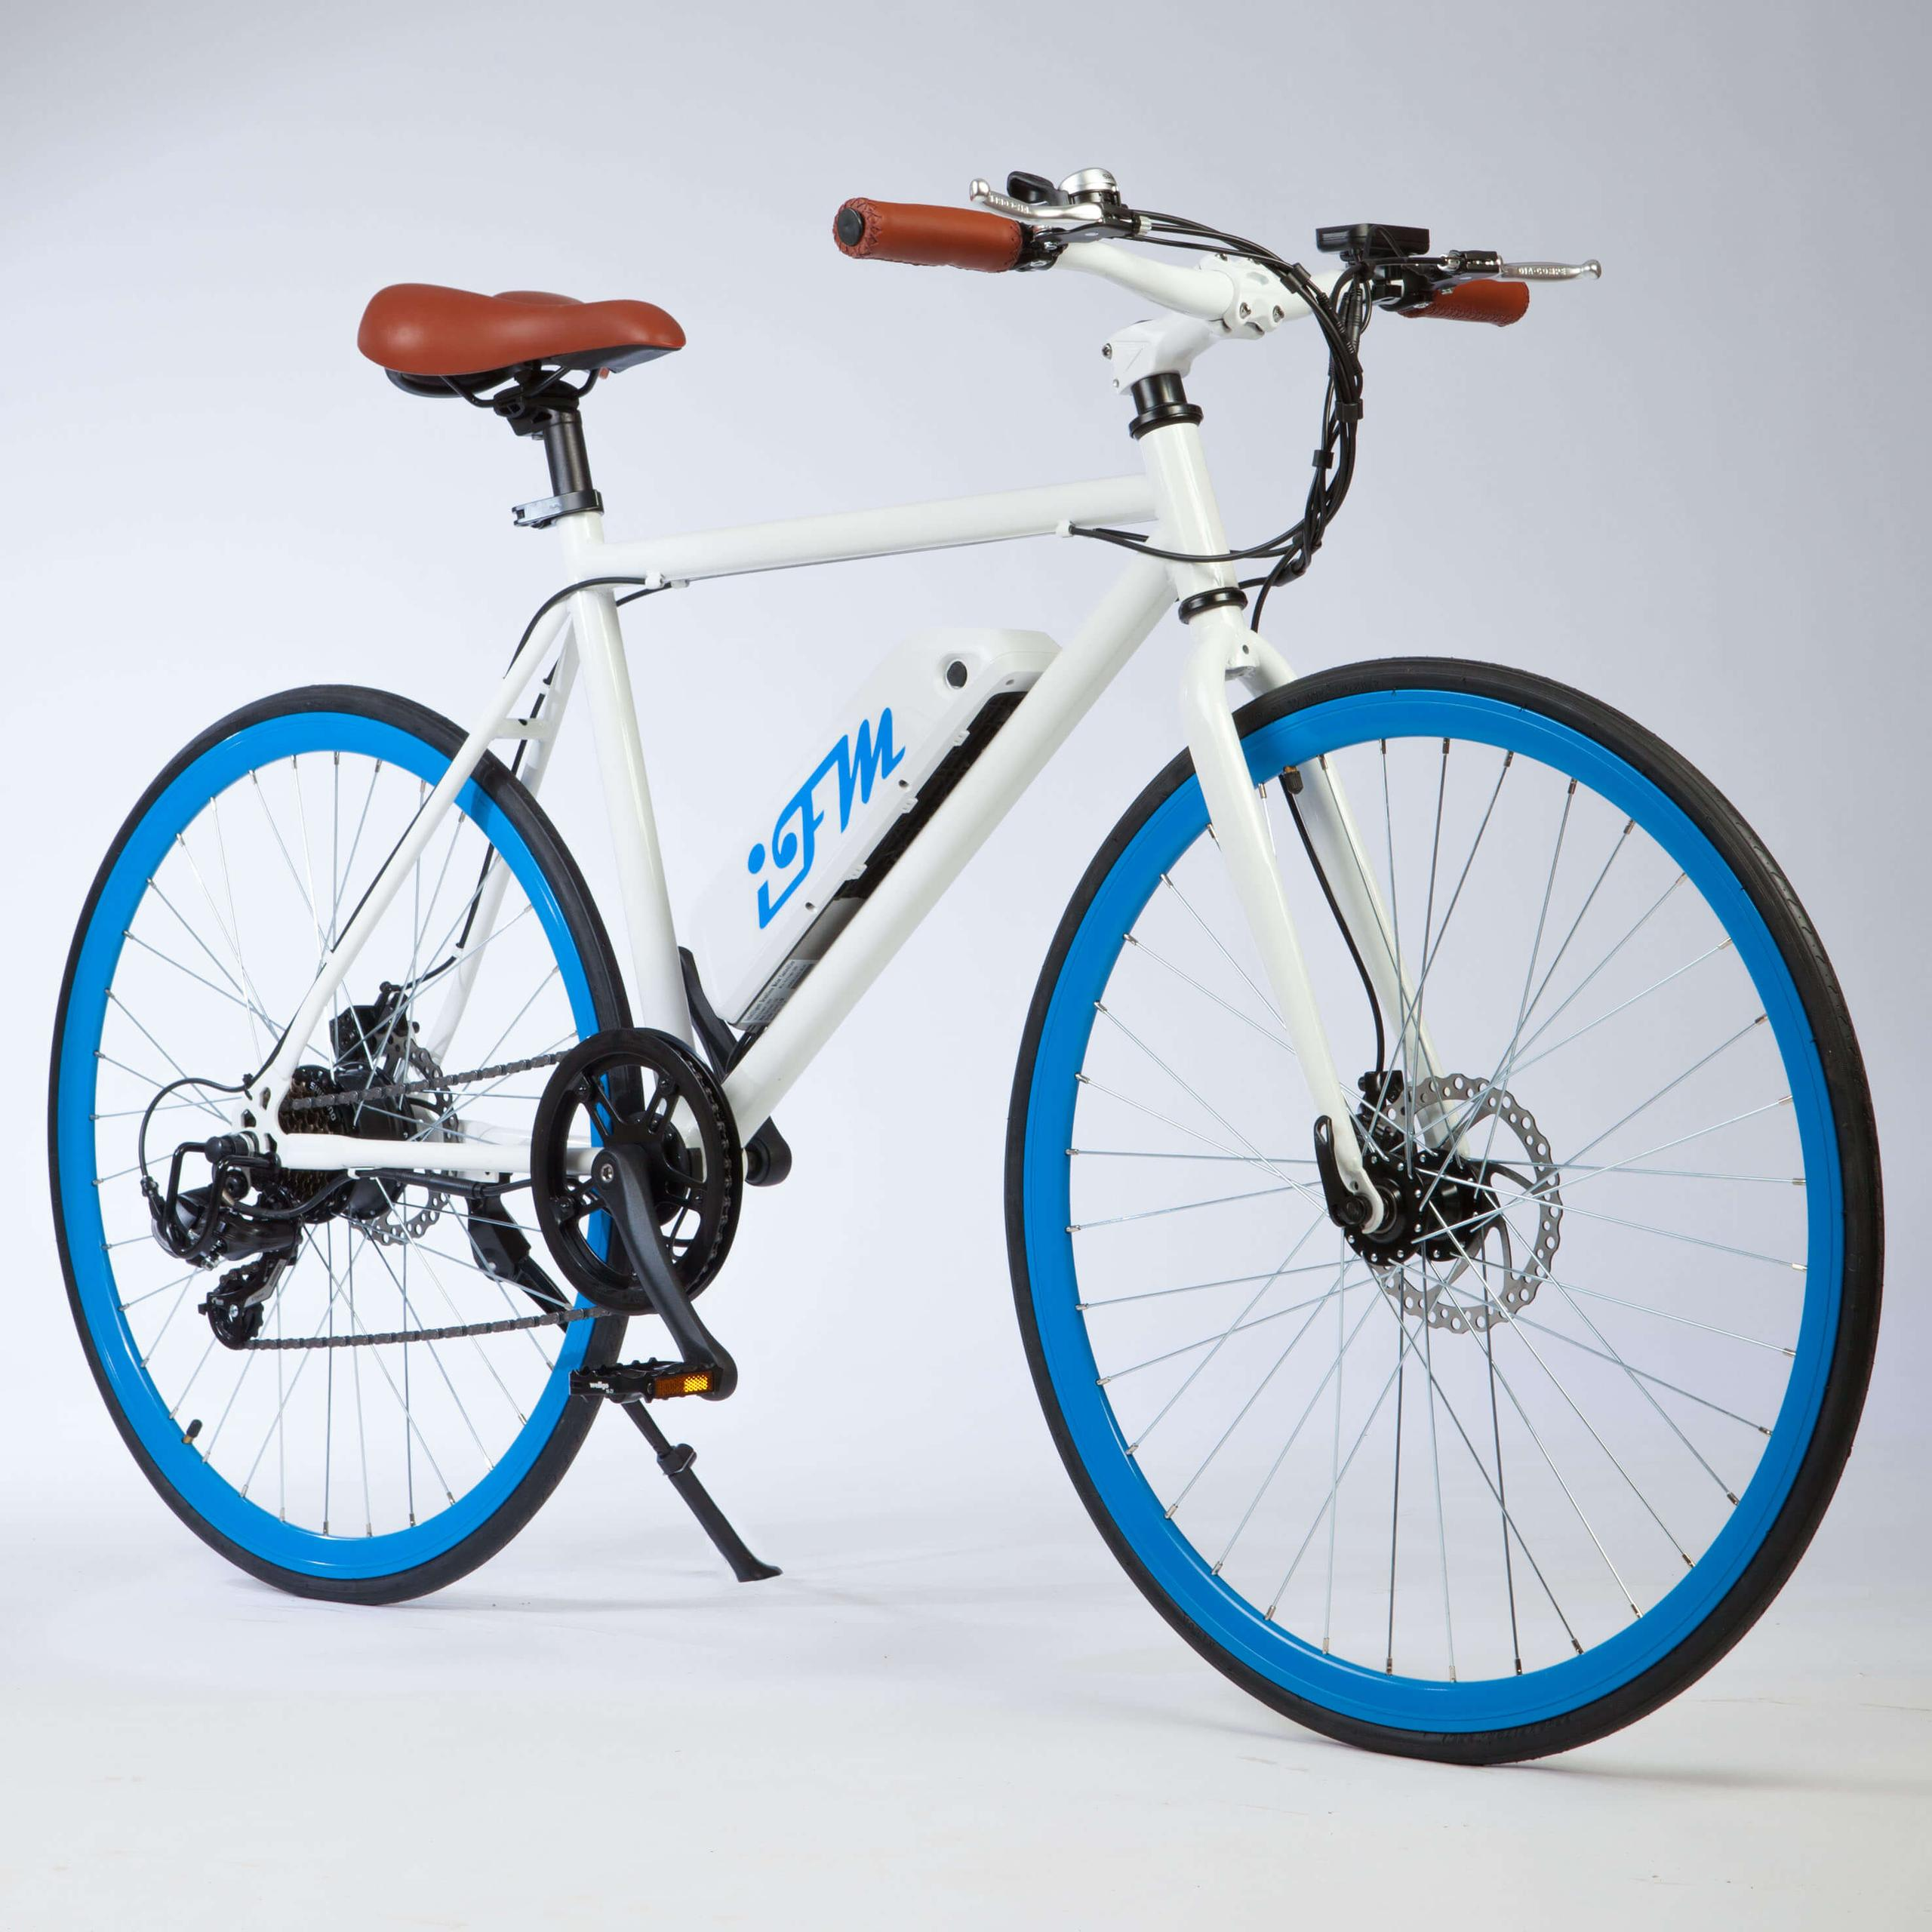 "Image of Bicicletta Elettrica Uomo 26"" IMT City Bike Blu"